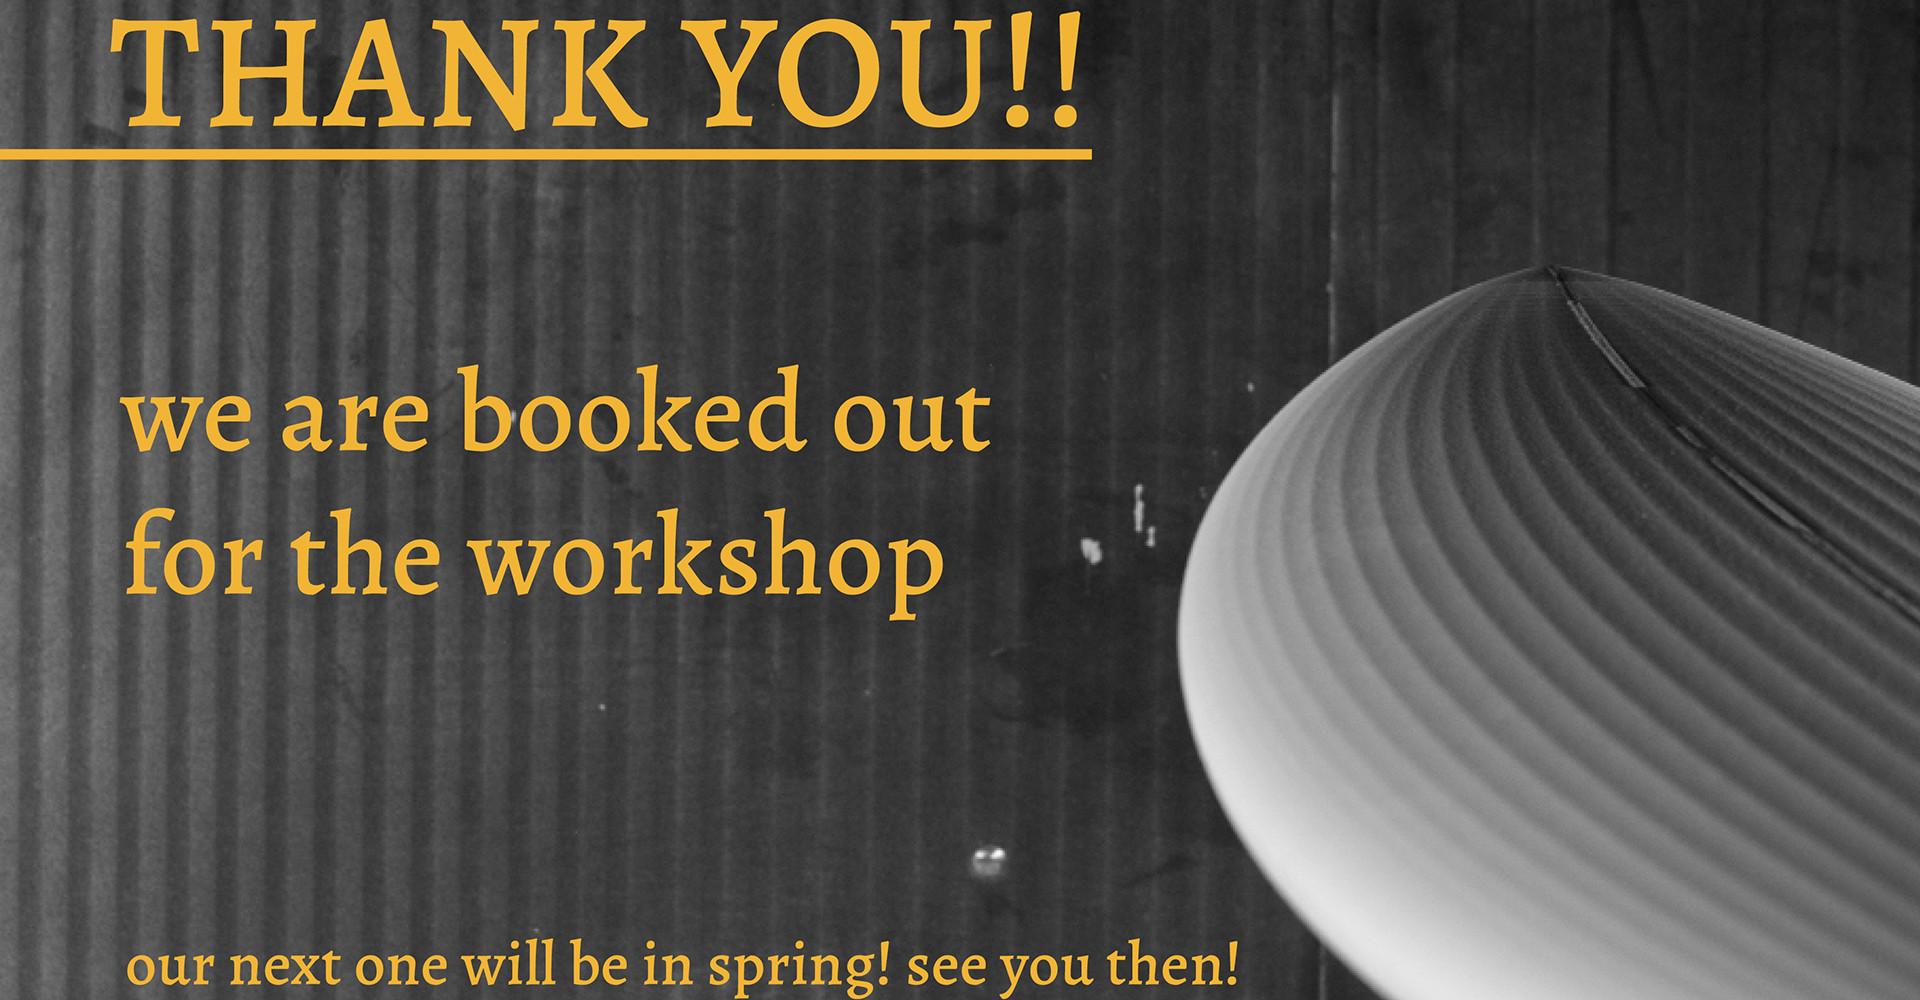 Workshop is booked out - see you in spring!